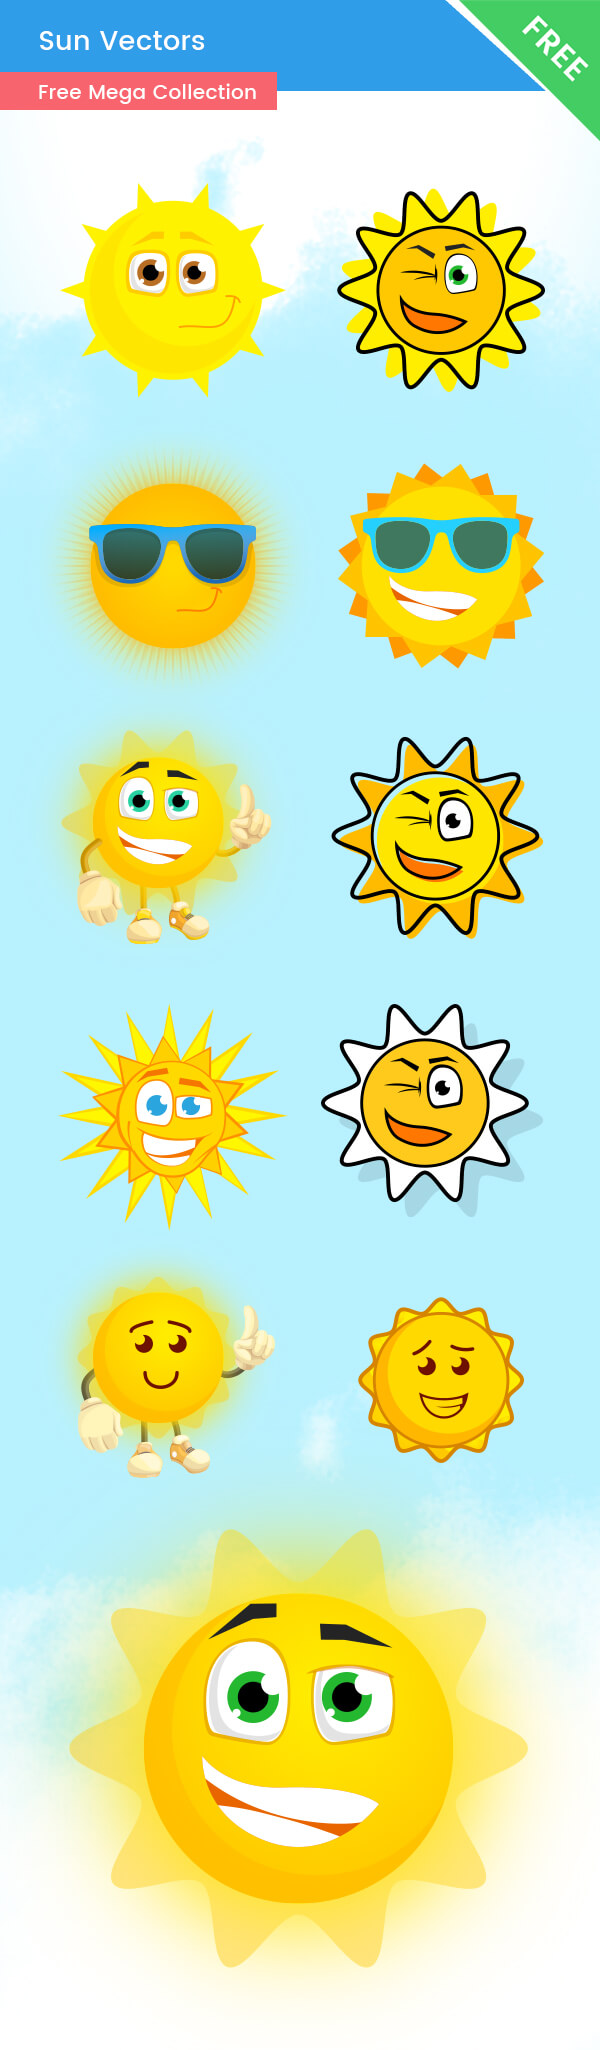 Free Vector Sun Characters - Ultimate Collection